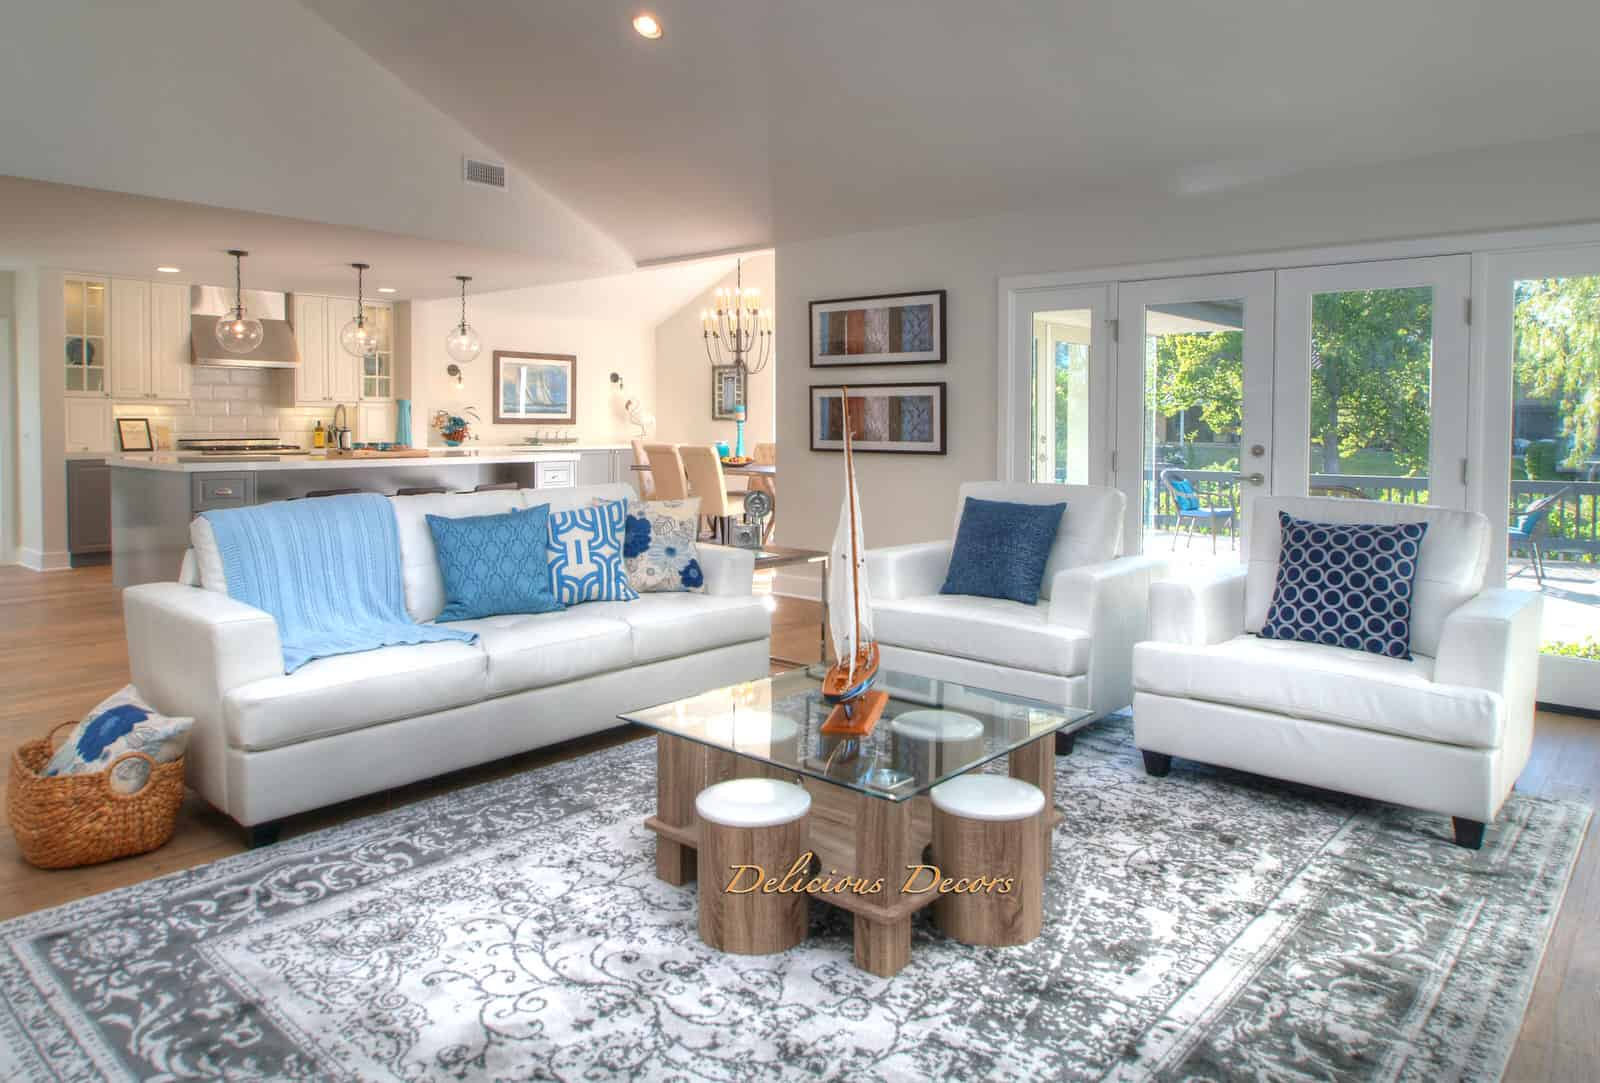 INCREASE YOUR HOME'S VALUE Staging Increases The Perceived Value of Your Home